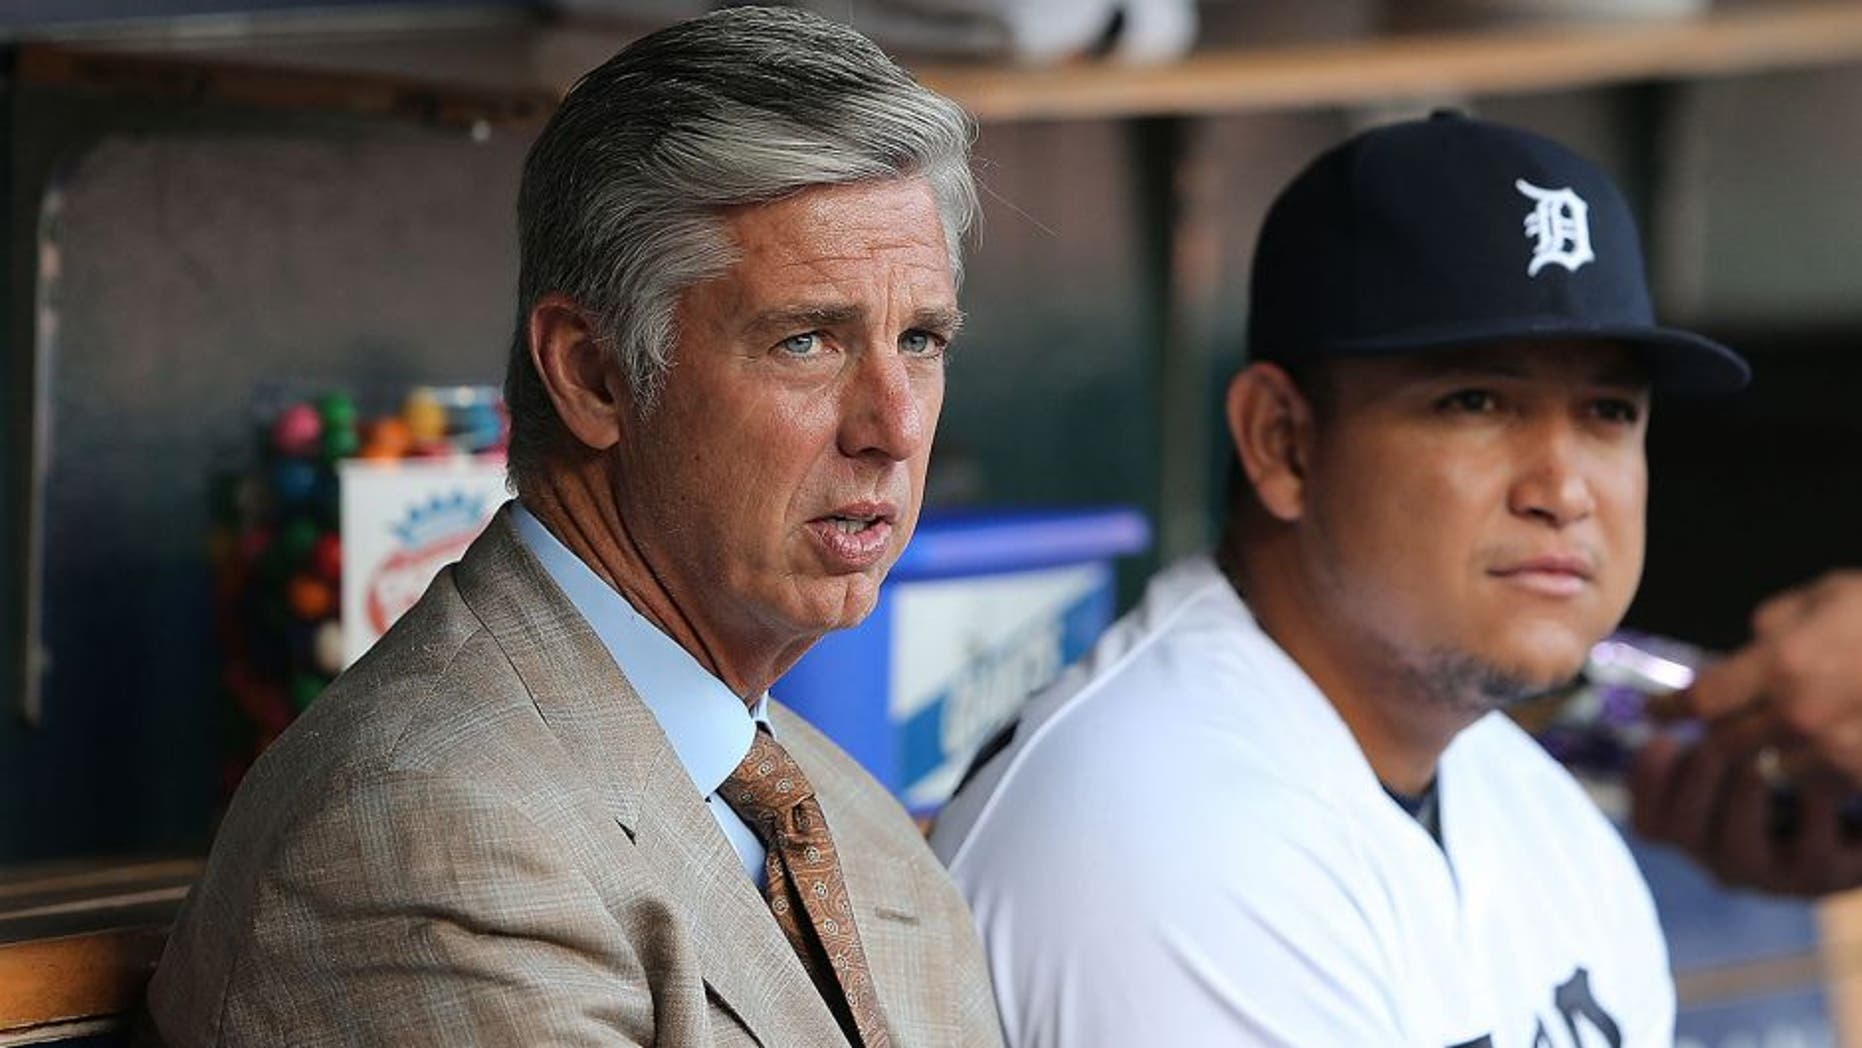 DETROIT, MI - AUGUST 02: Detroit Tigers President and General Manager Dave Dombrowski sits next to Miguel Cabrera #24 prior to the start of the game against the Colorado Rockies at Comerica Park on August 2, 2014 in Detroit, Michigan. The Tigers defeated the Rockies 11-4. (Photo by Leon Halip/Getty Images) *** Local Caption *** Dave Dombrowski; Miguel Cabrera